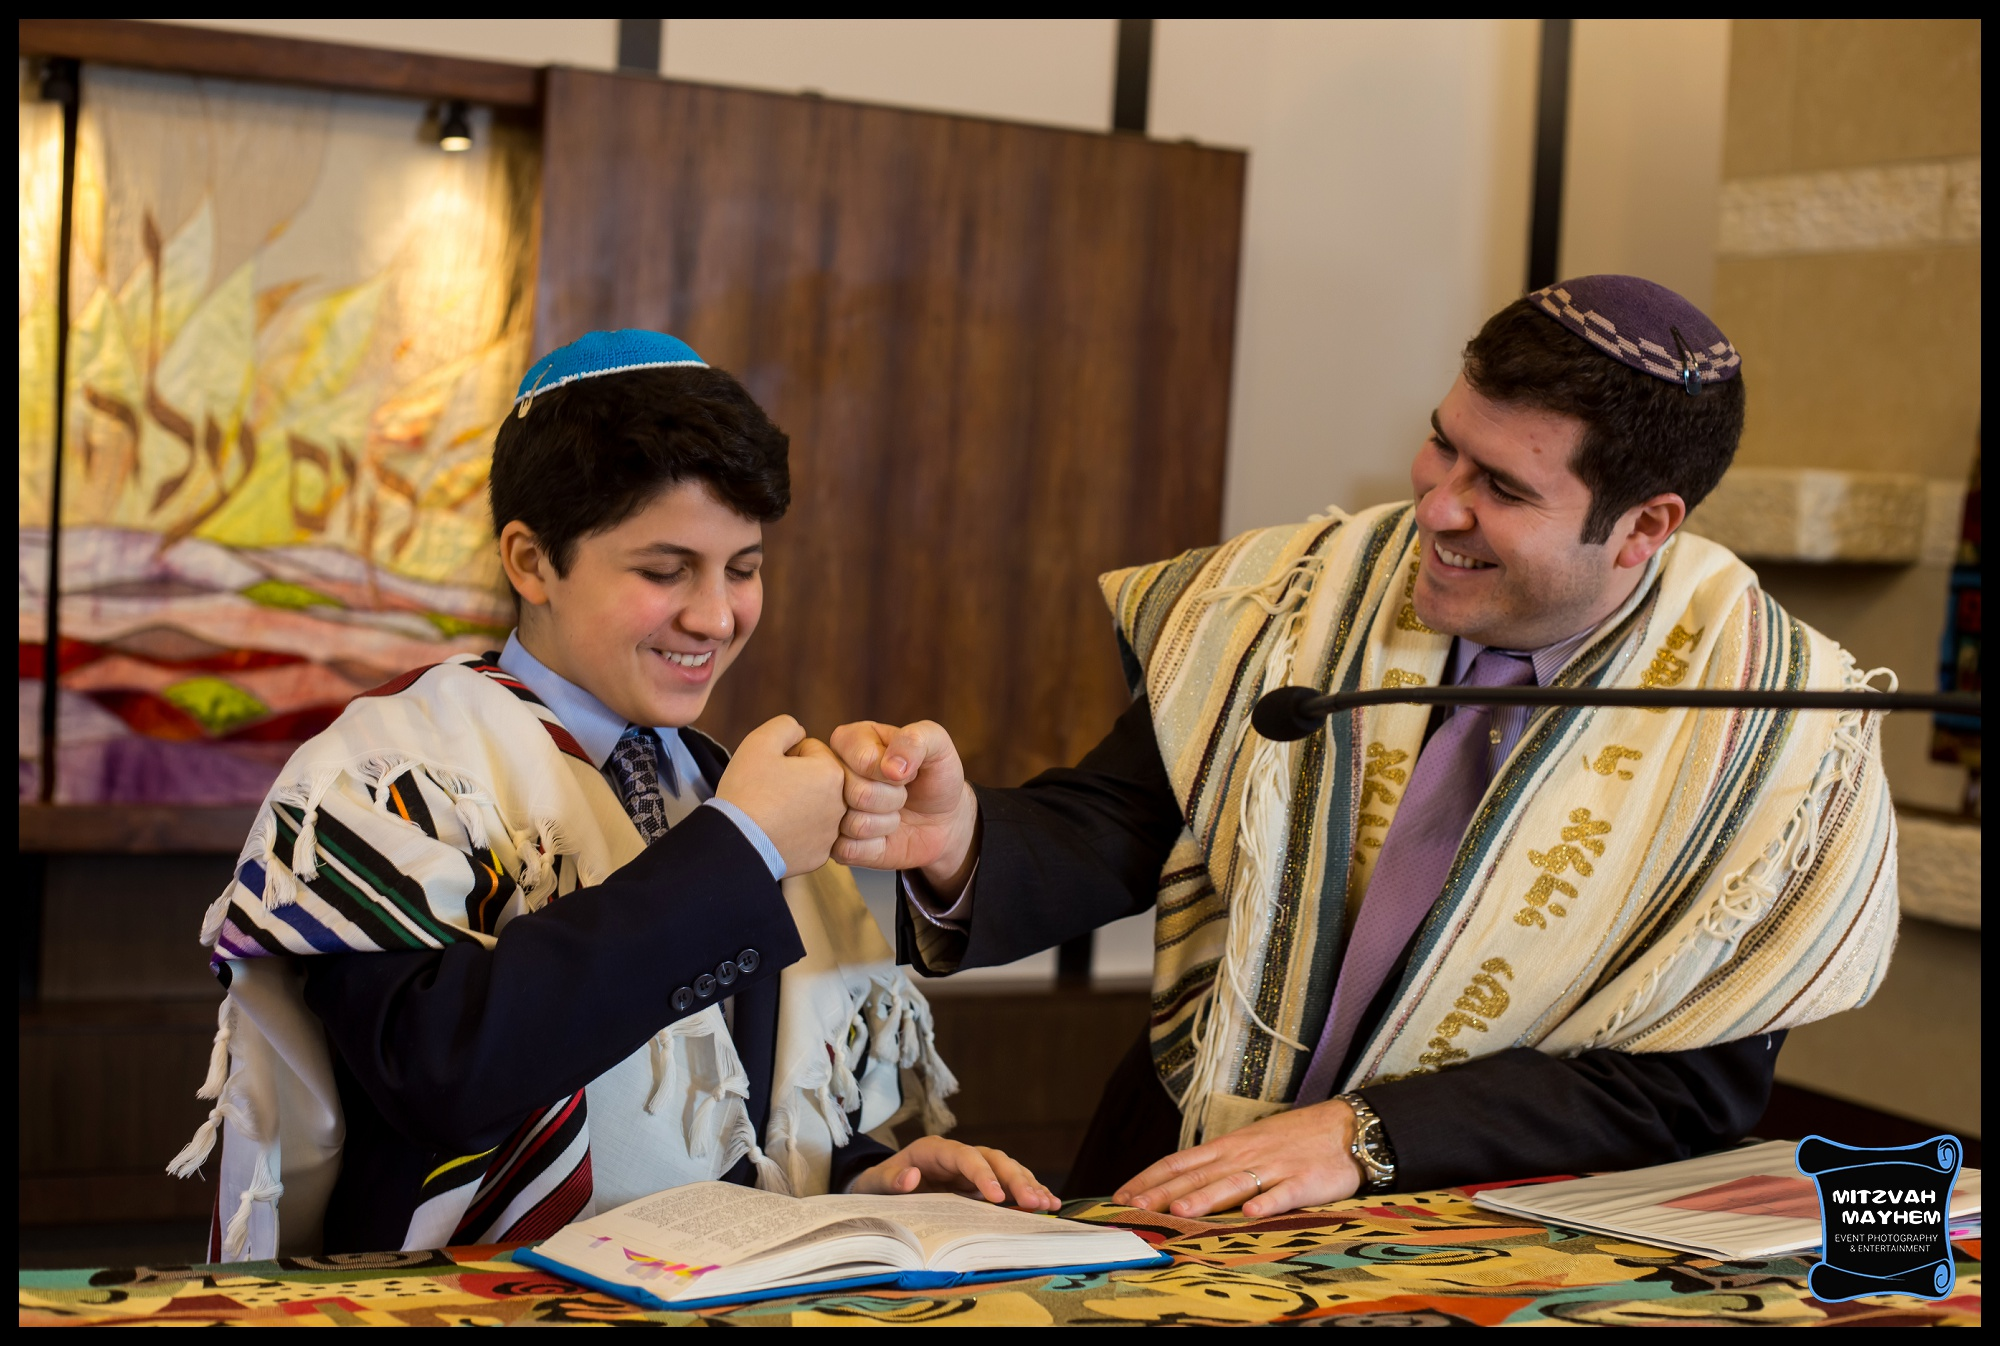 congregation-beth-el-south-orange-bar-mitzvah-4919.jpg